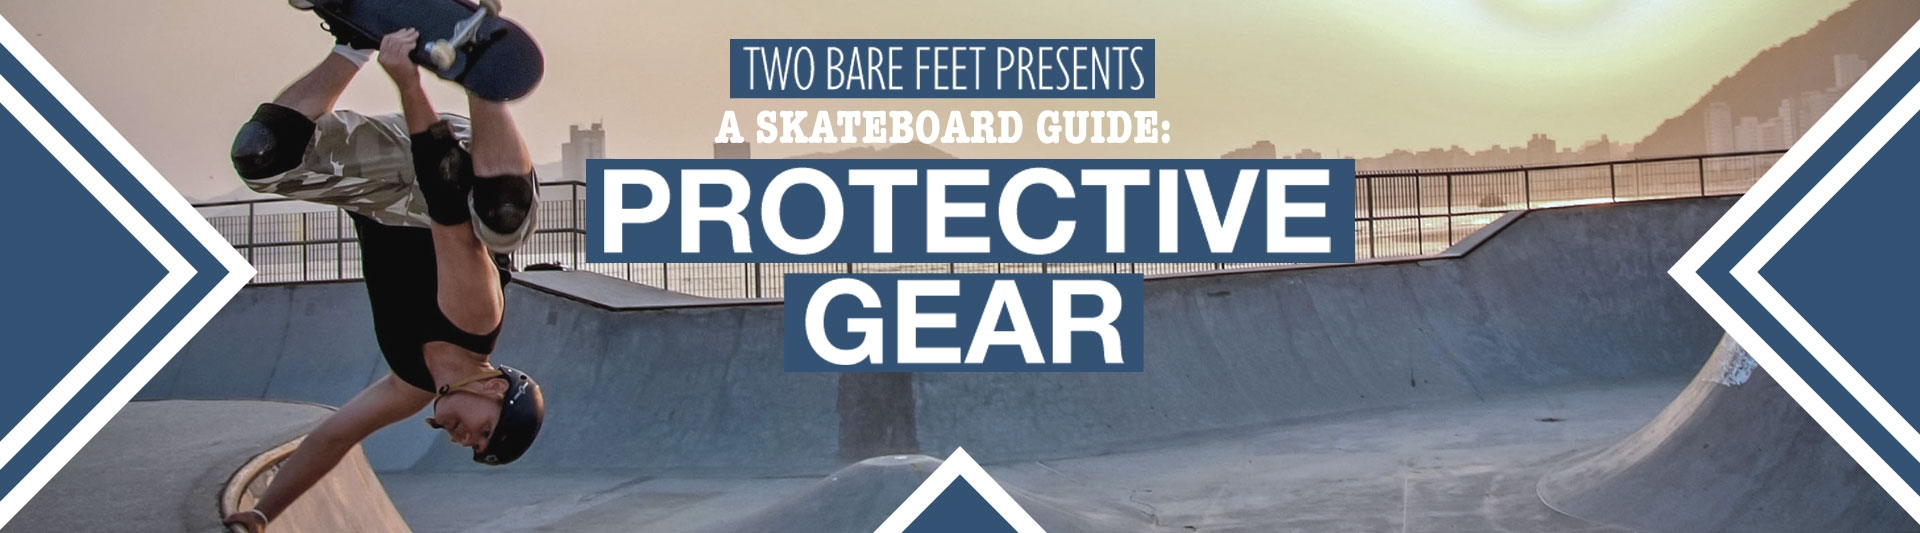 Skate protective gear banner